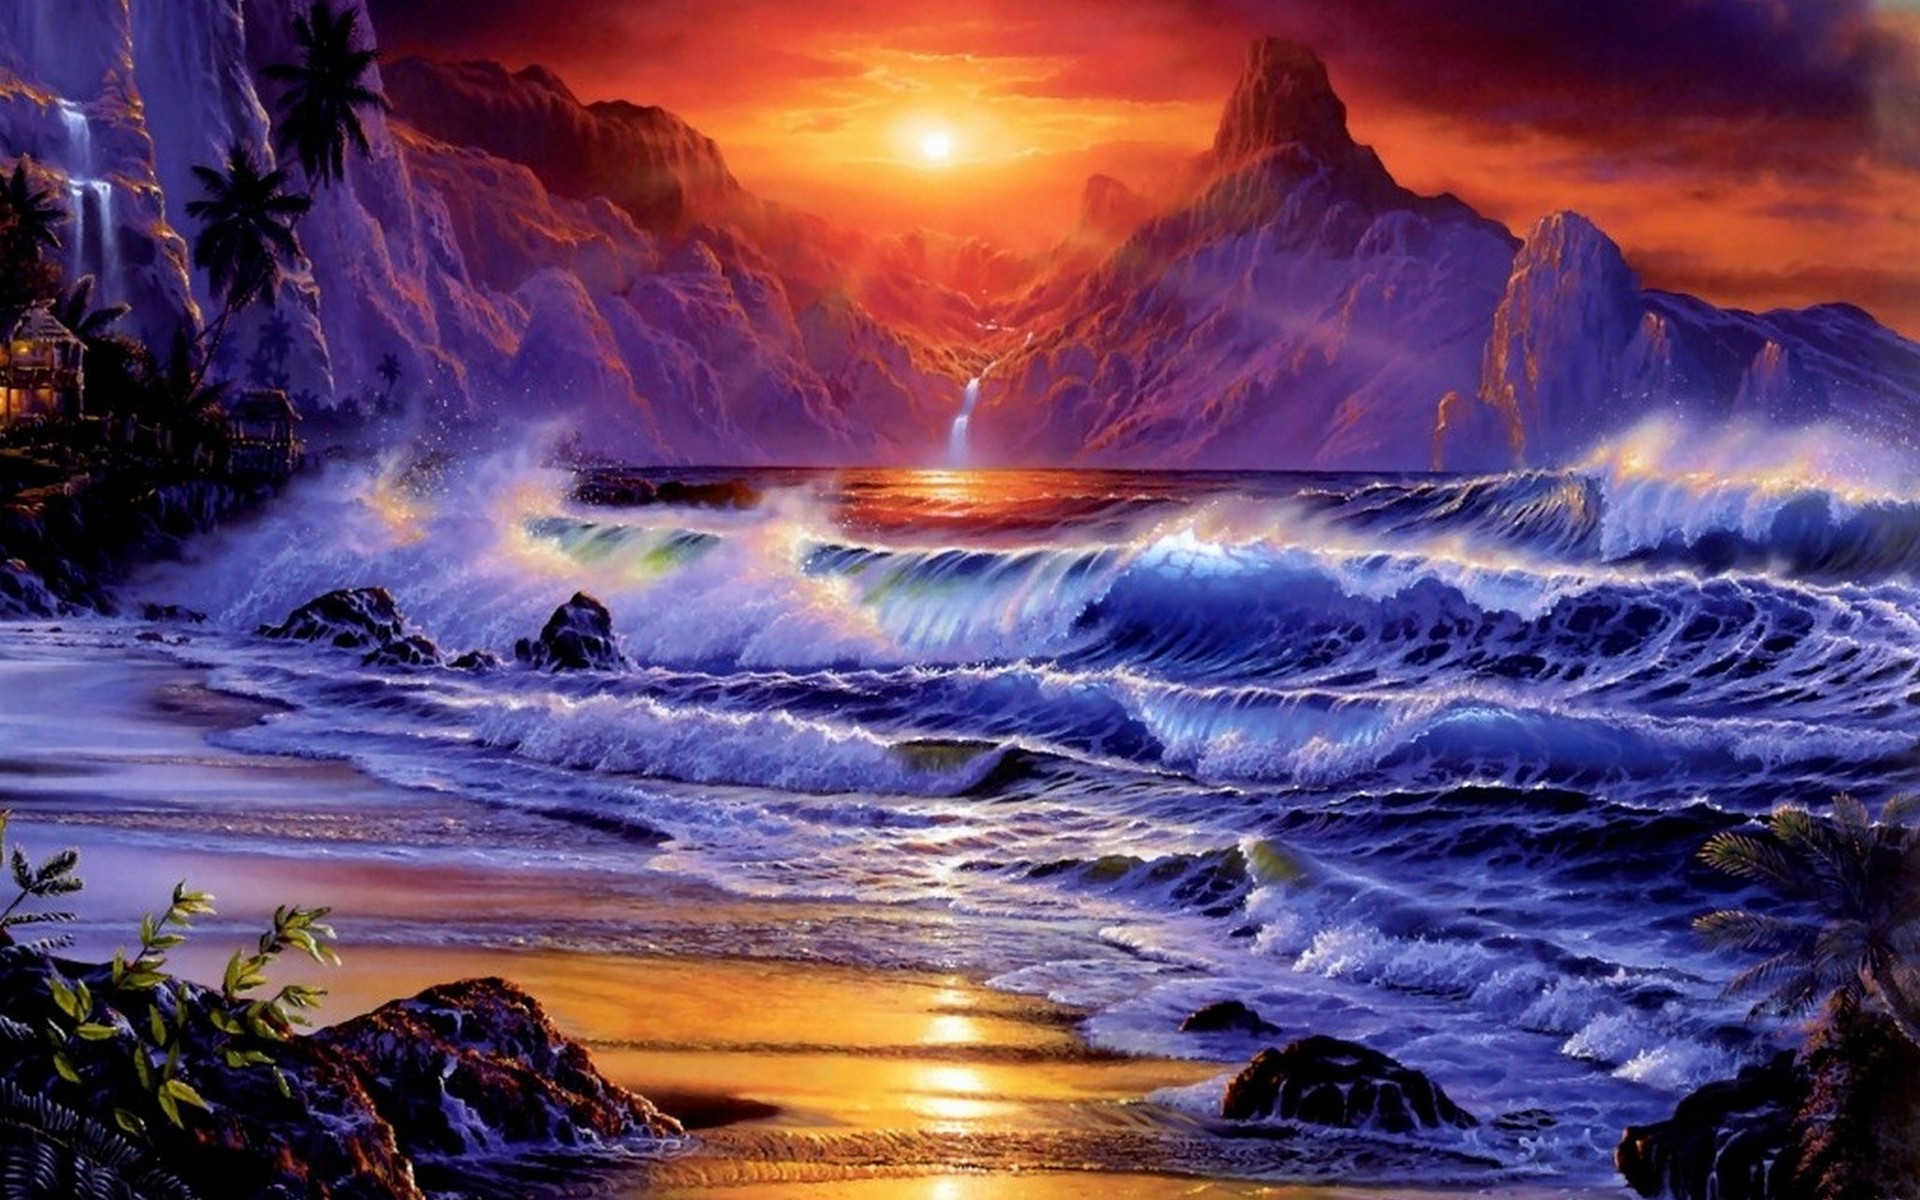 3d Abstract Sunset Beach From Another World Ipad Wallpaper: Ocean Waves Sunset Beach Wallpapers